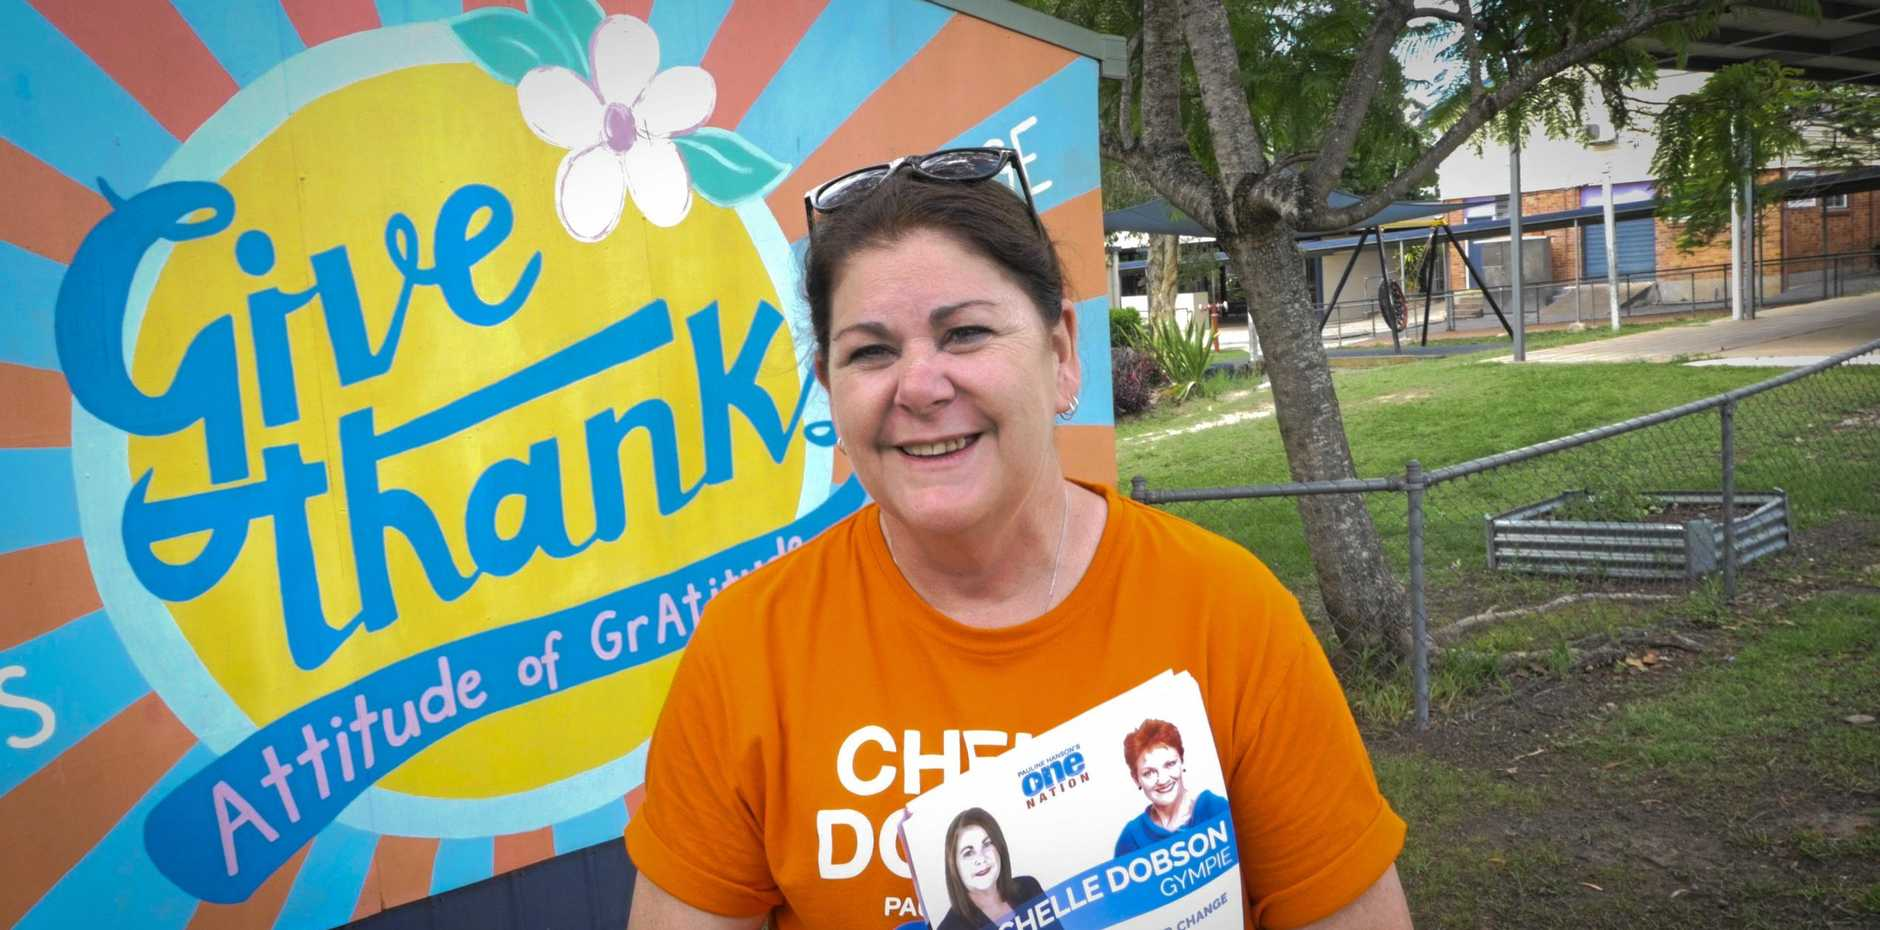 Gympie One Nation Candidate Chelle Dobson.